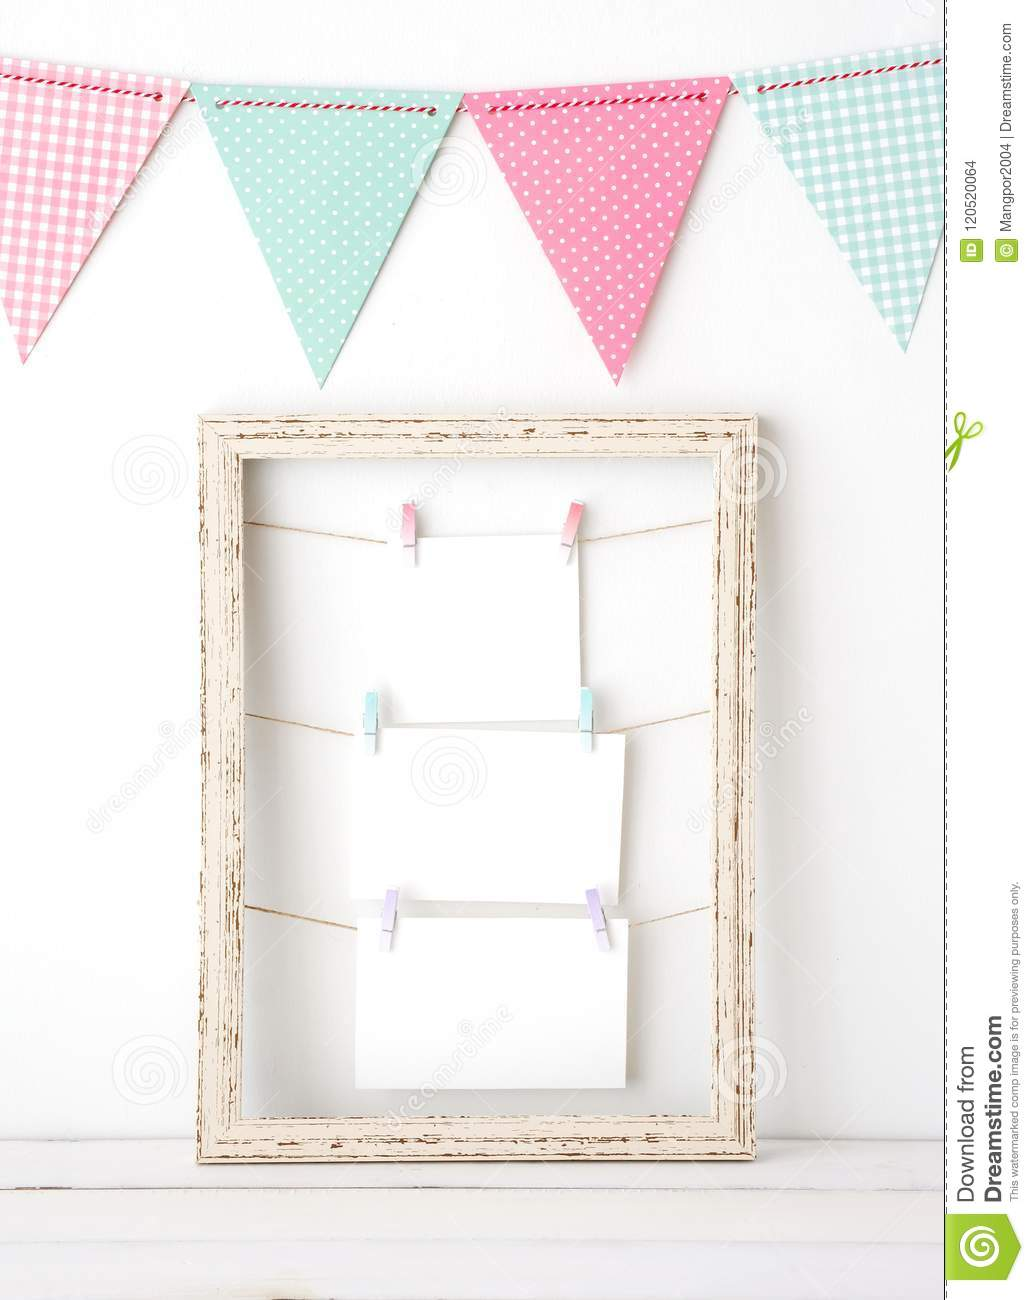 Colorful Party Flags Hanging Over White Vintage Wooden Frame Wit ...